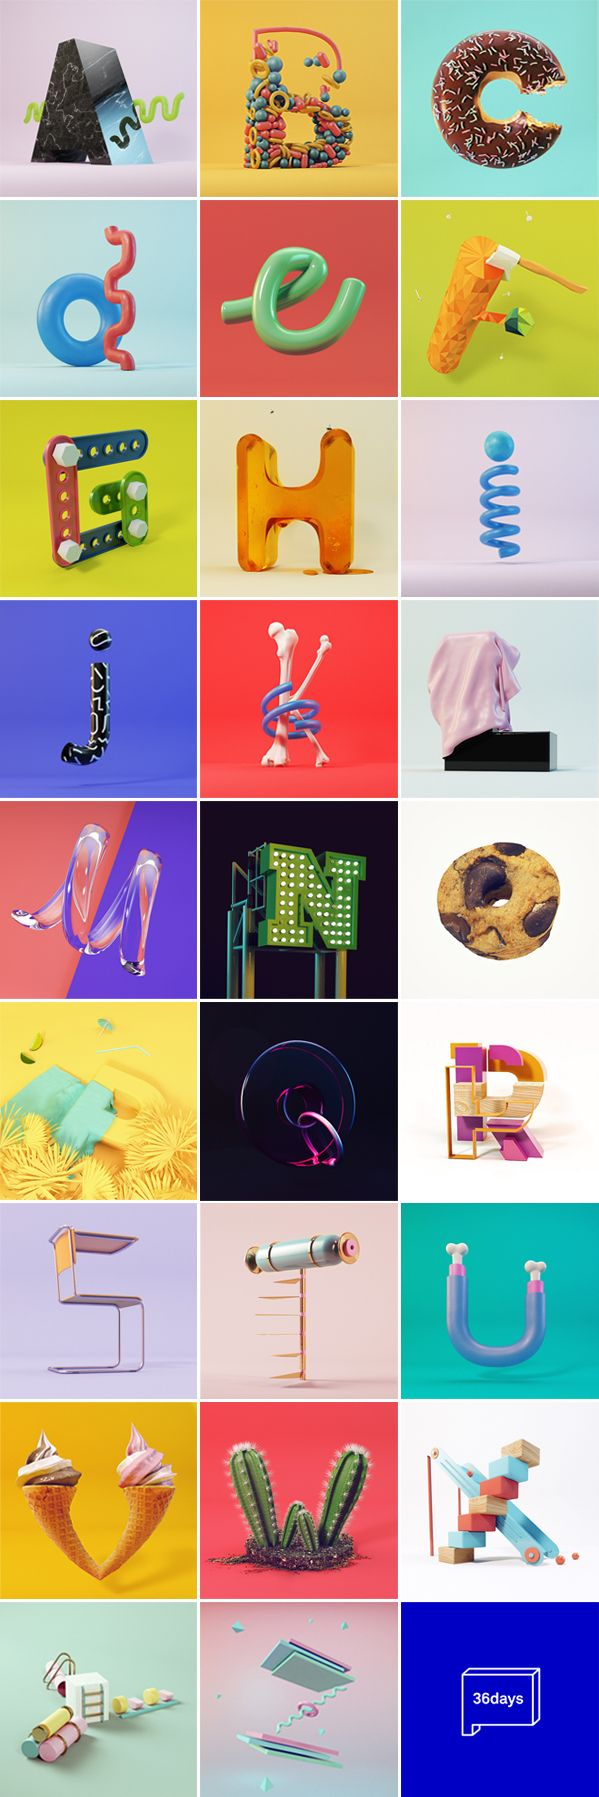 36daysoftype is a project that invites designers, illustrators and graphic artists to give their particular view on the signs from our alphabet.